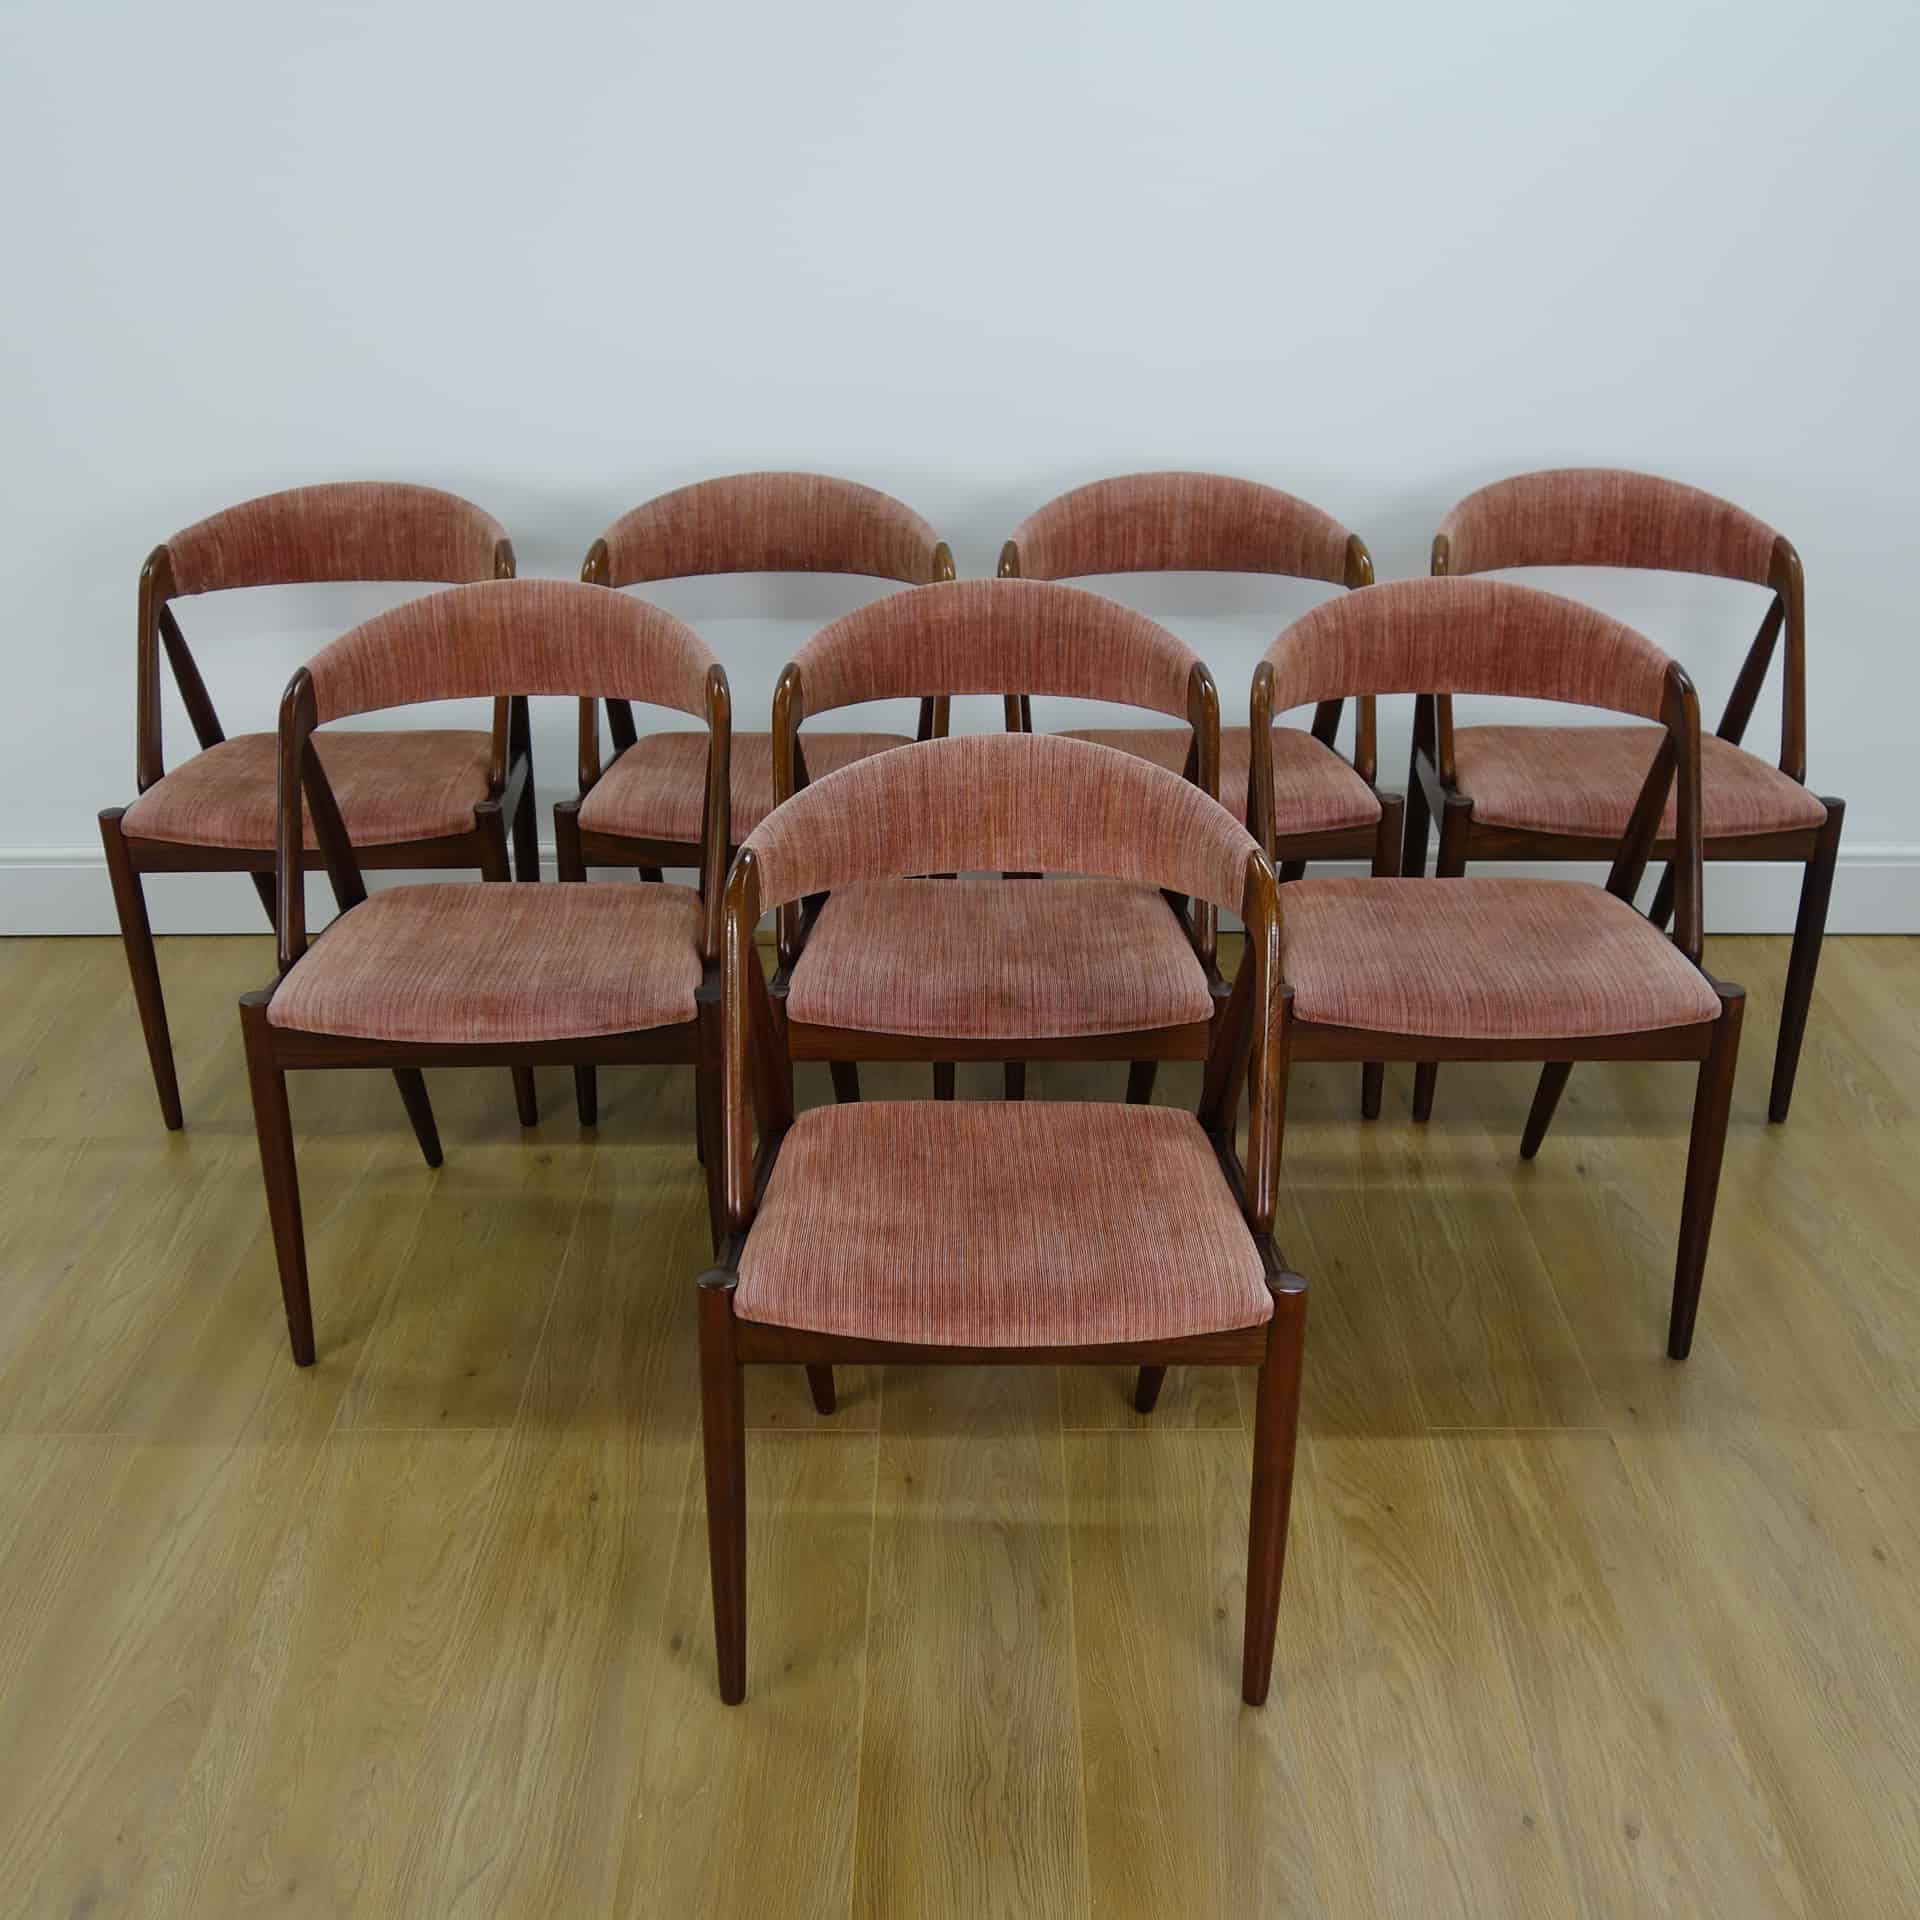 Set of 8 Rosewood model 31 chairs by kai Kristiansen